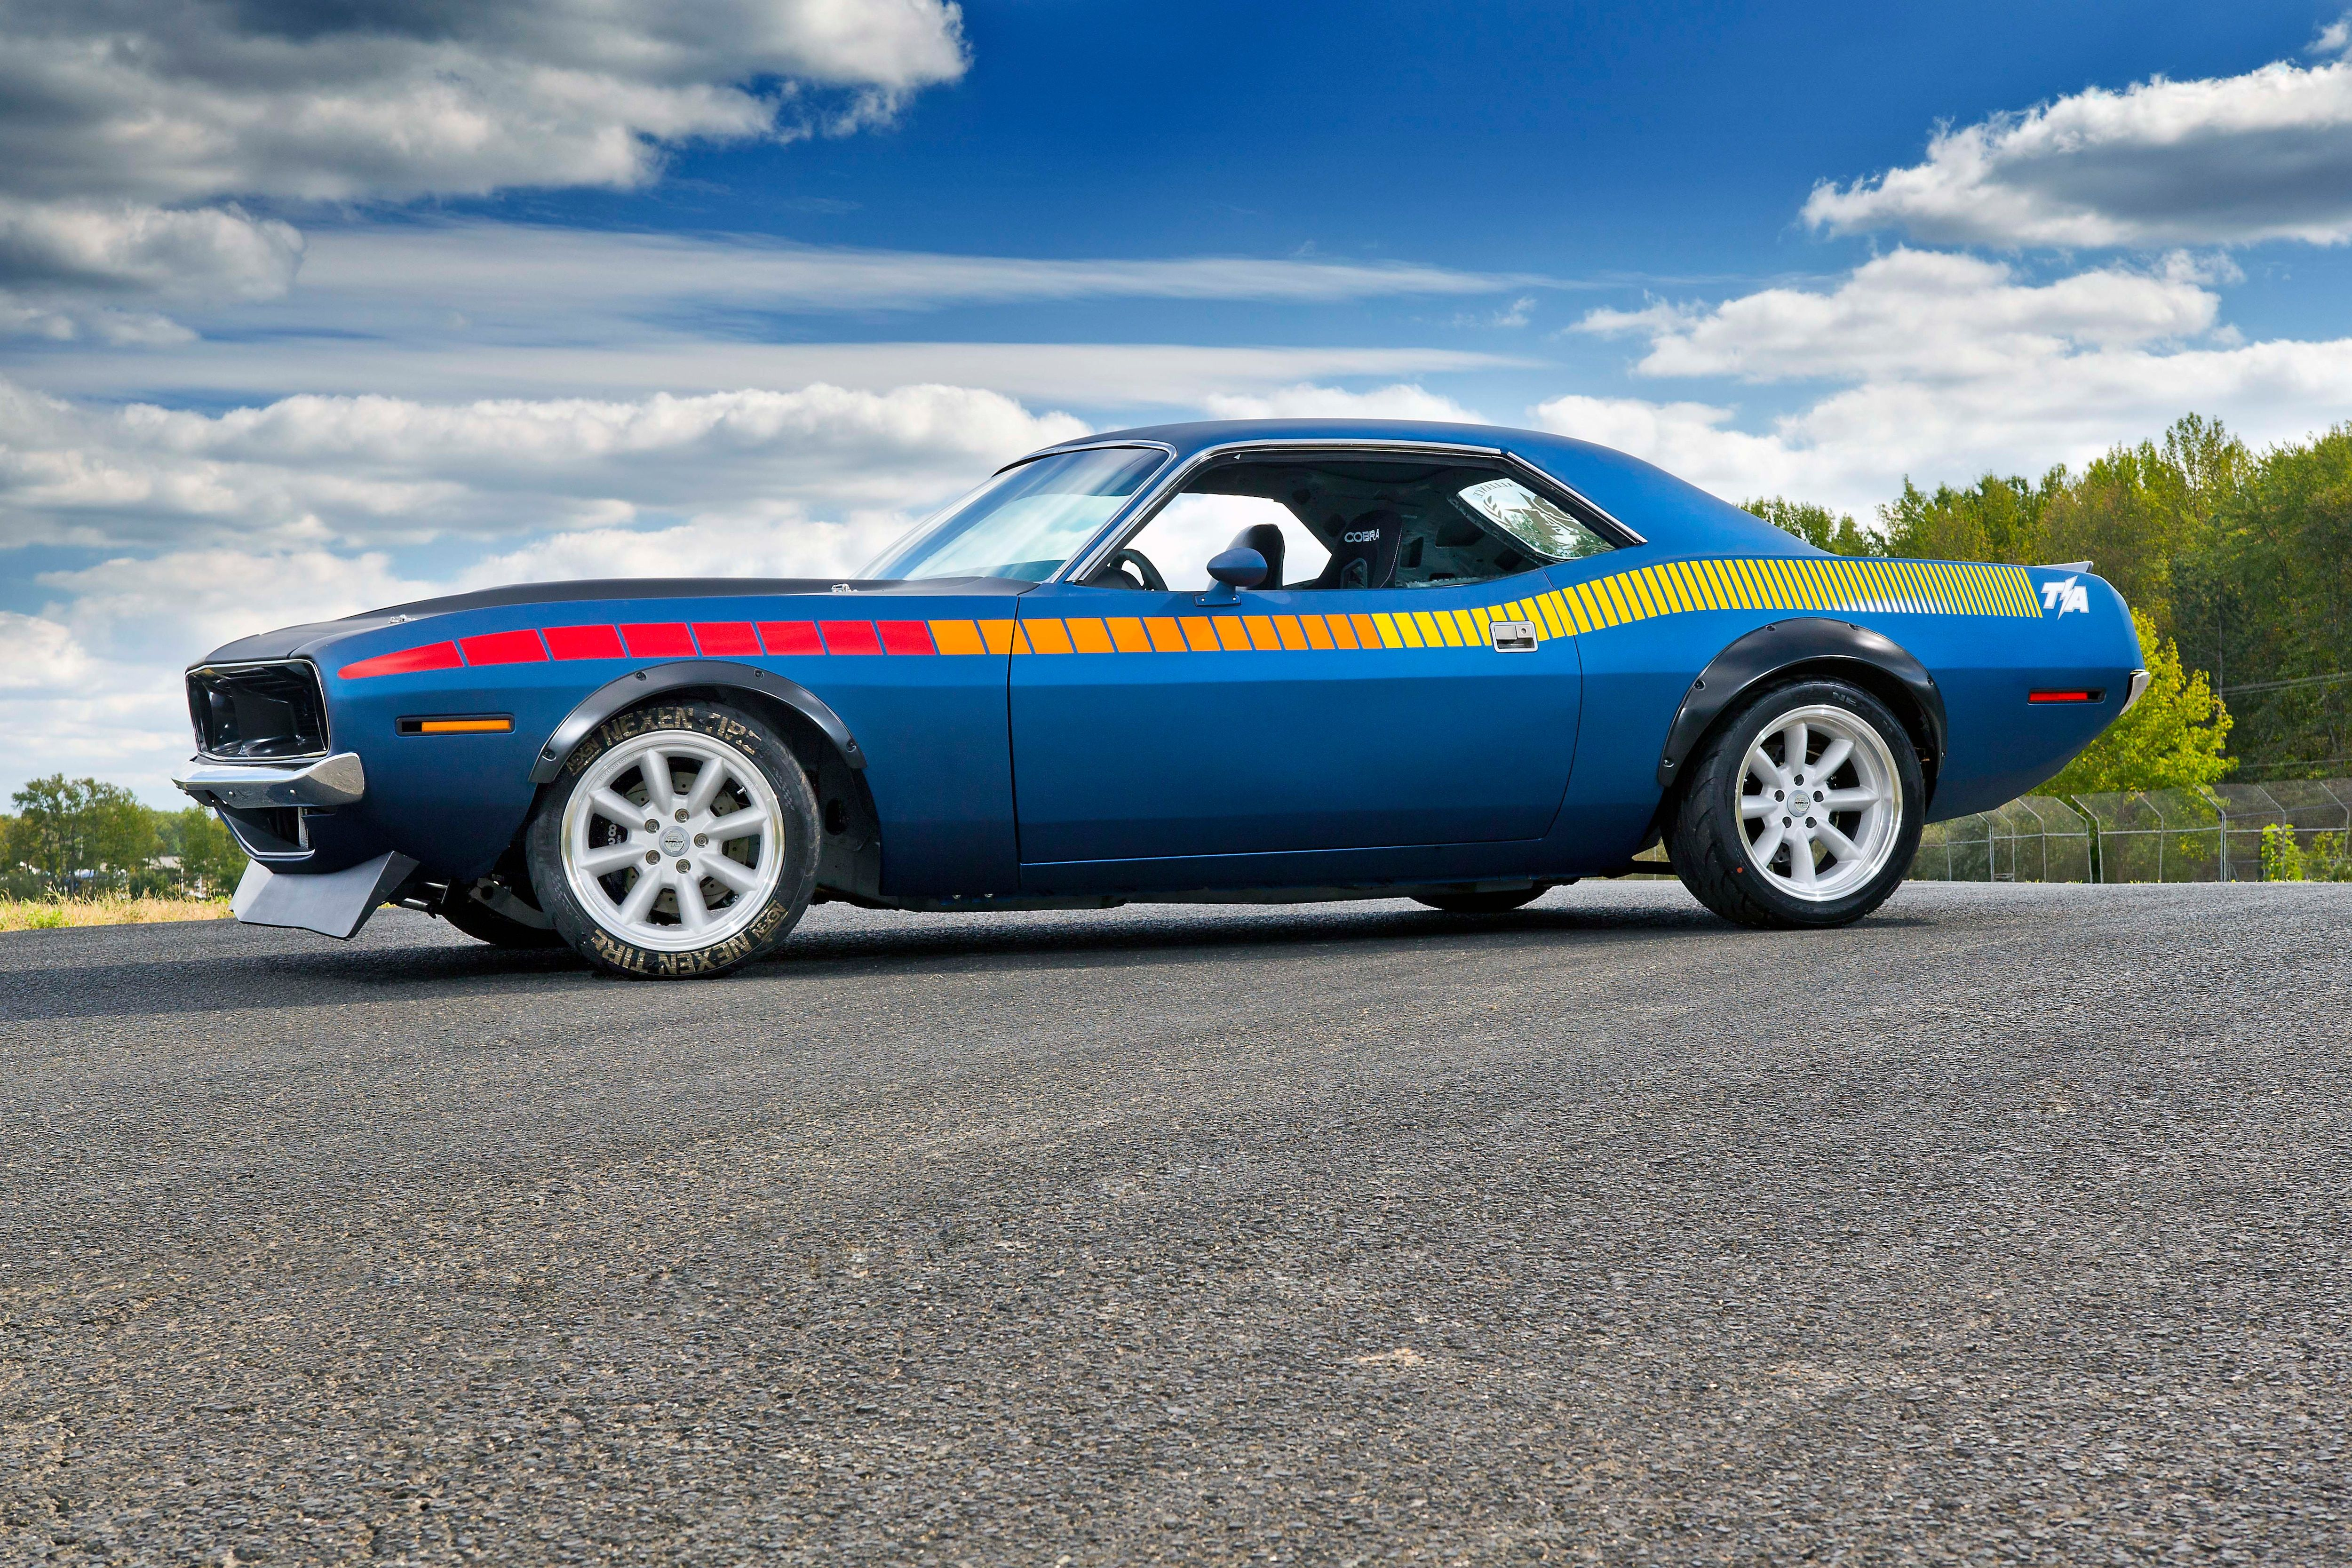 This Is A Drift Car That Looks Like A Muscle Car Powered By A Late